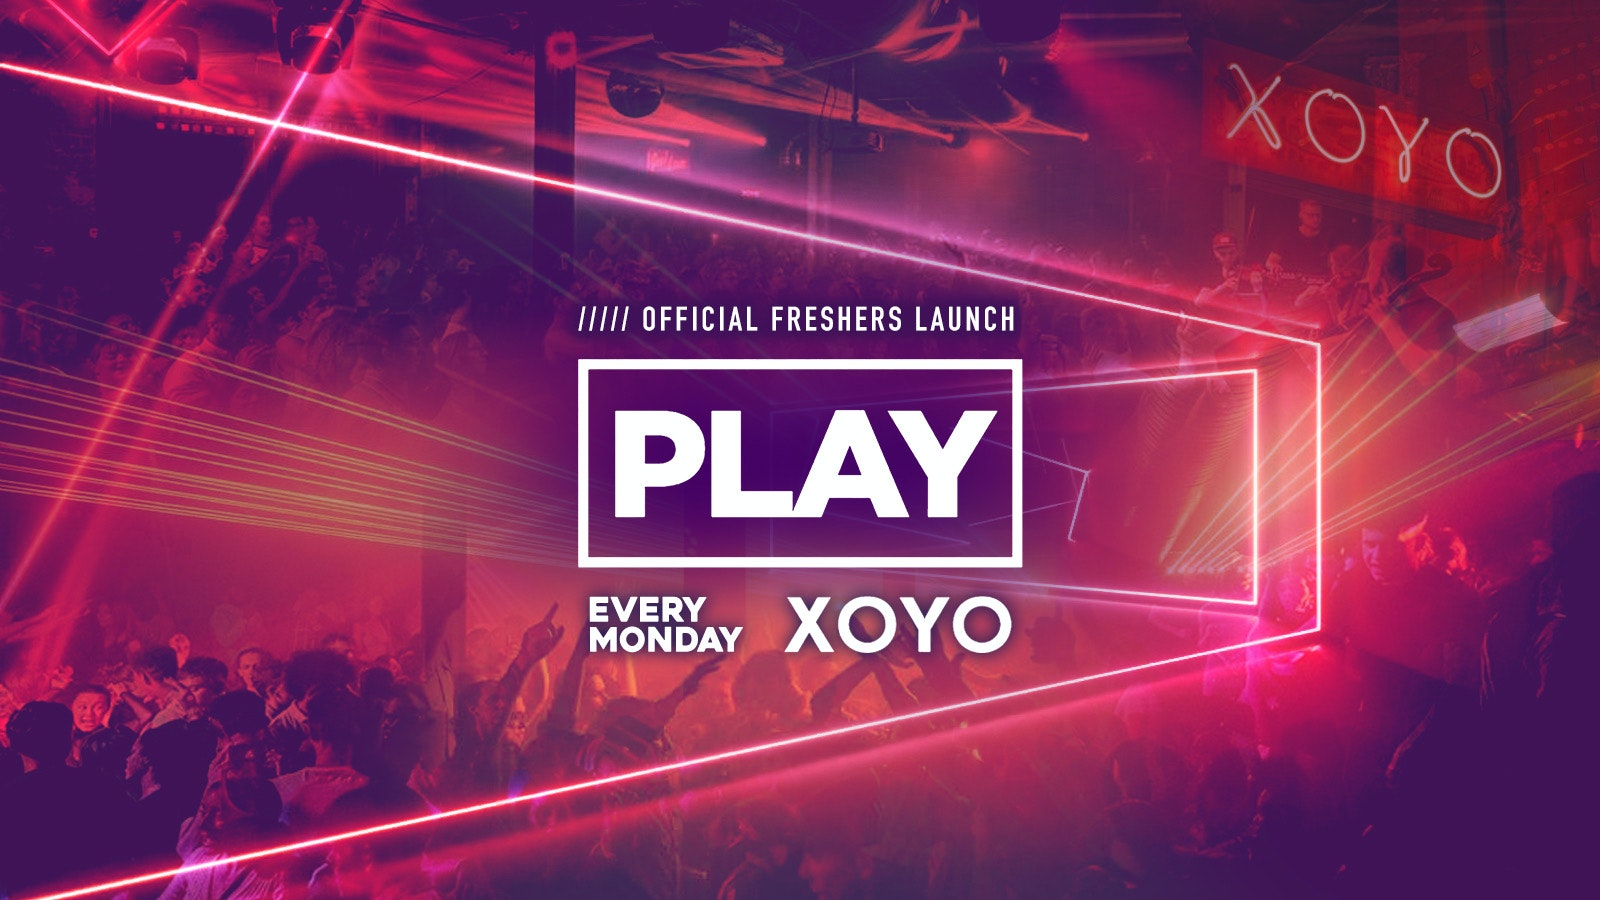 PLAY LONDON – FRESHERS LAUNCH PART 2 // XOYO – Every Monday